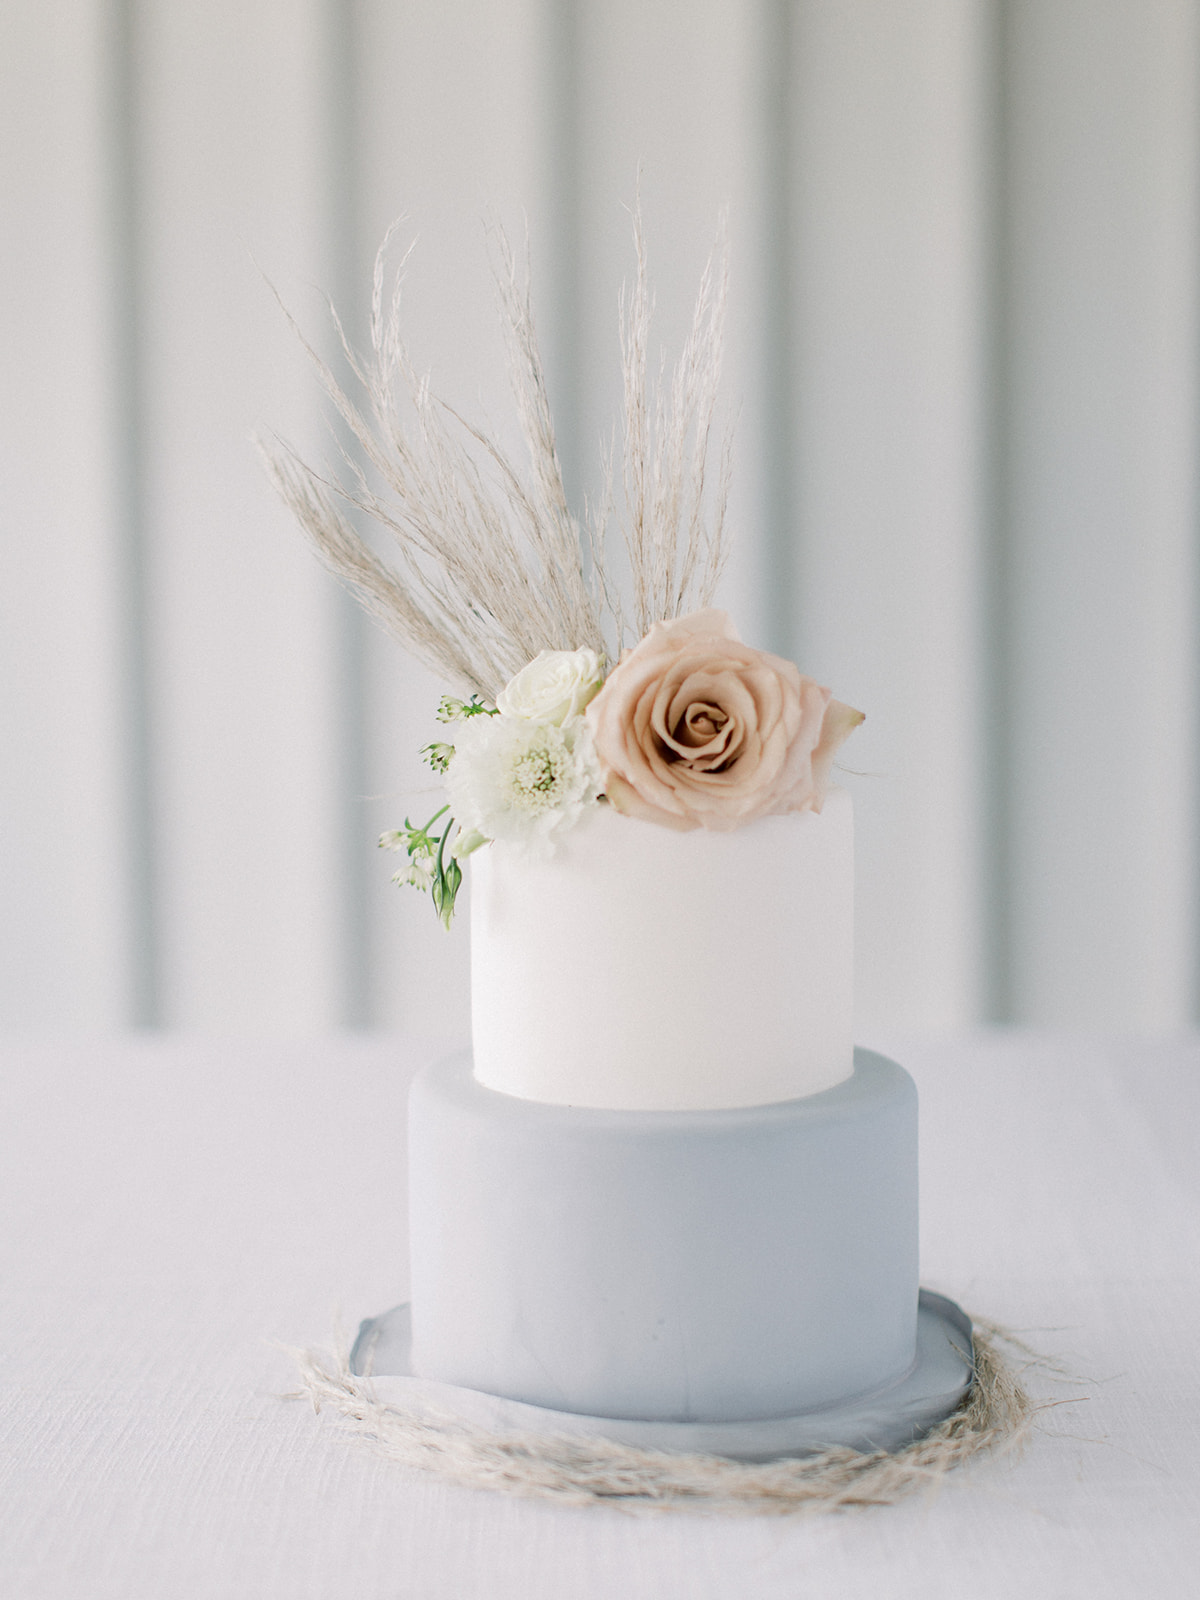 Gray and white wedding cake: Clean & Modern Styled Shoot at 14TENN featured on Nashville Bride Guide